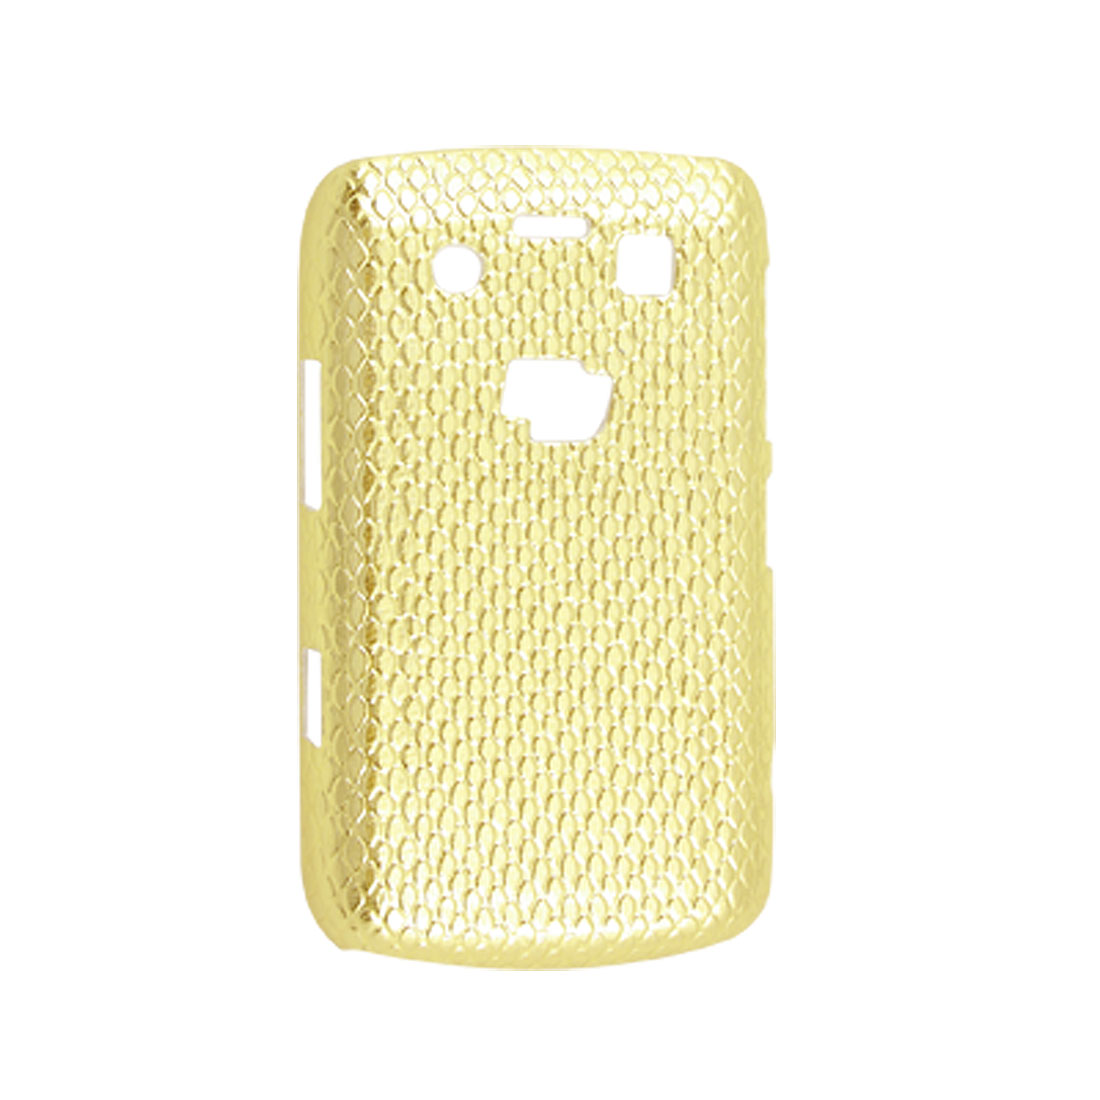 Hard Plastic Gold Tone Faux Leather Coated Snake Print Cover for Blackberry 9700